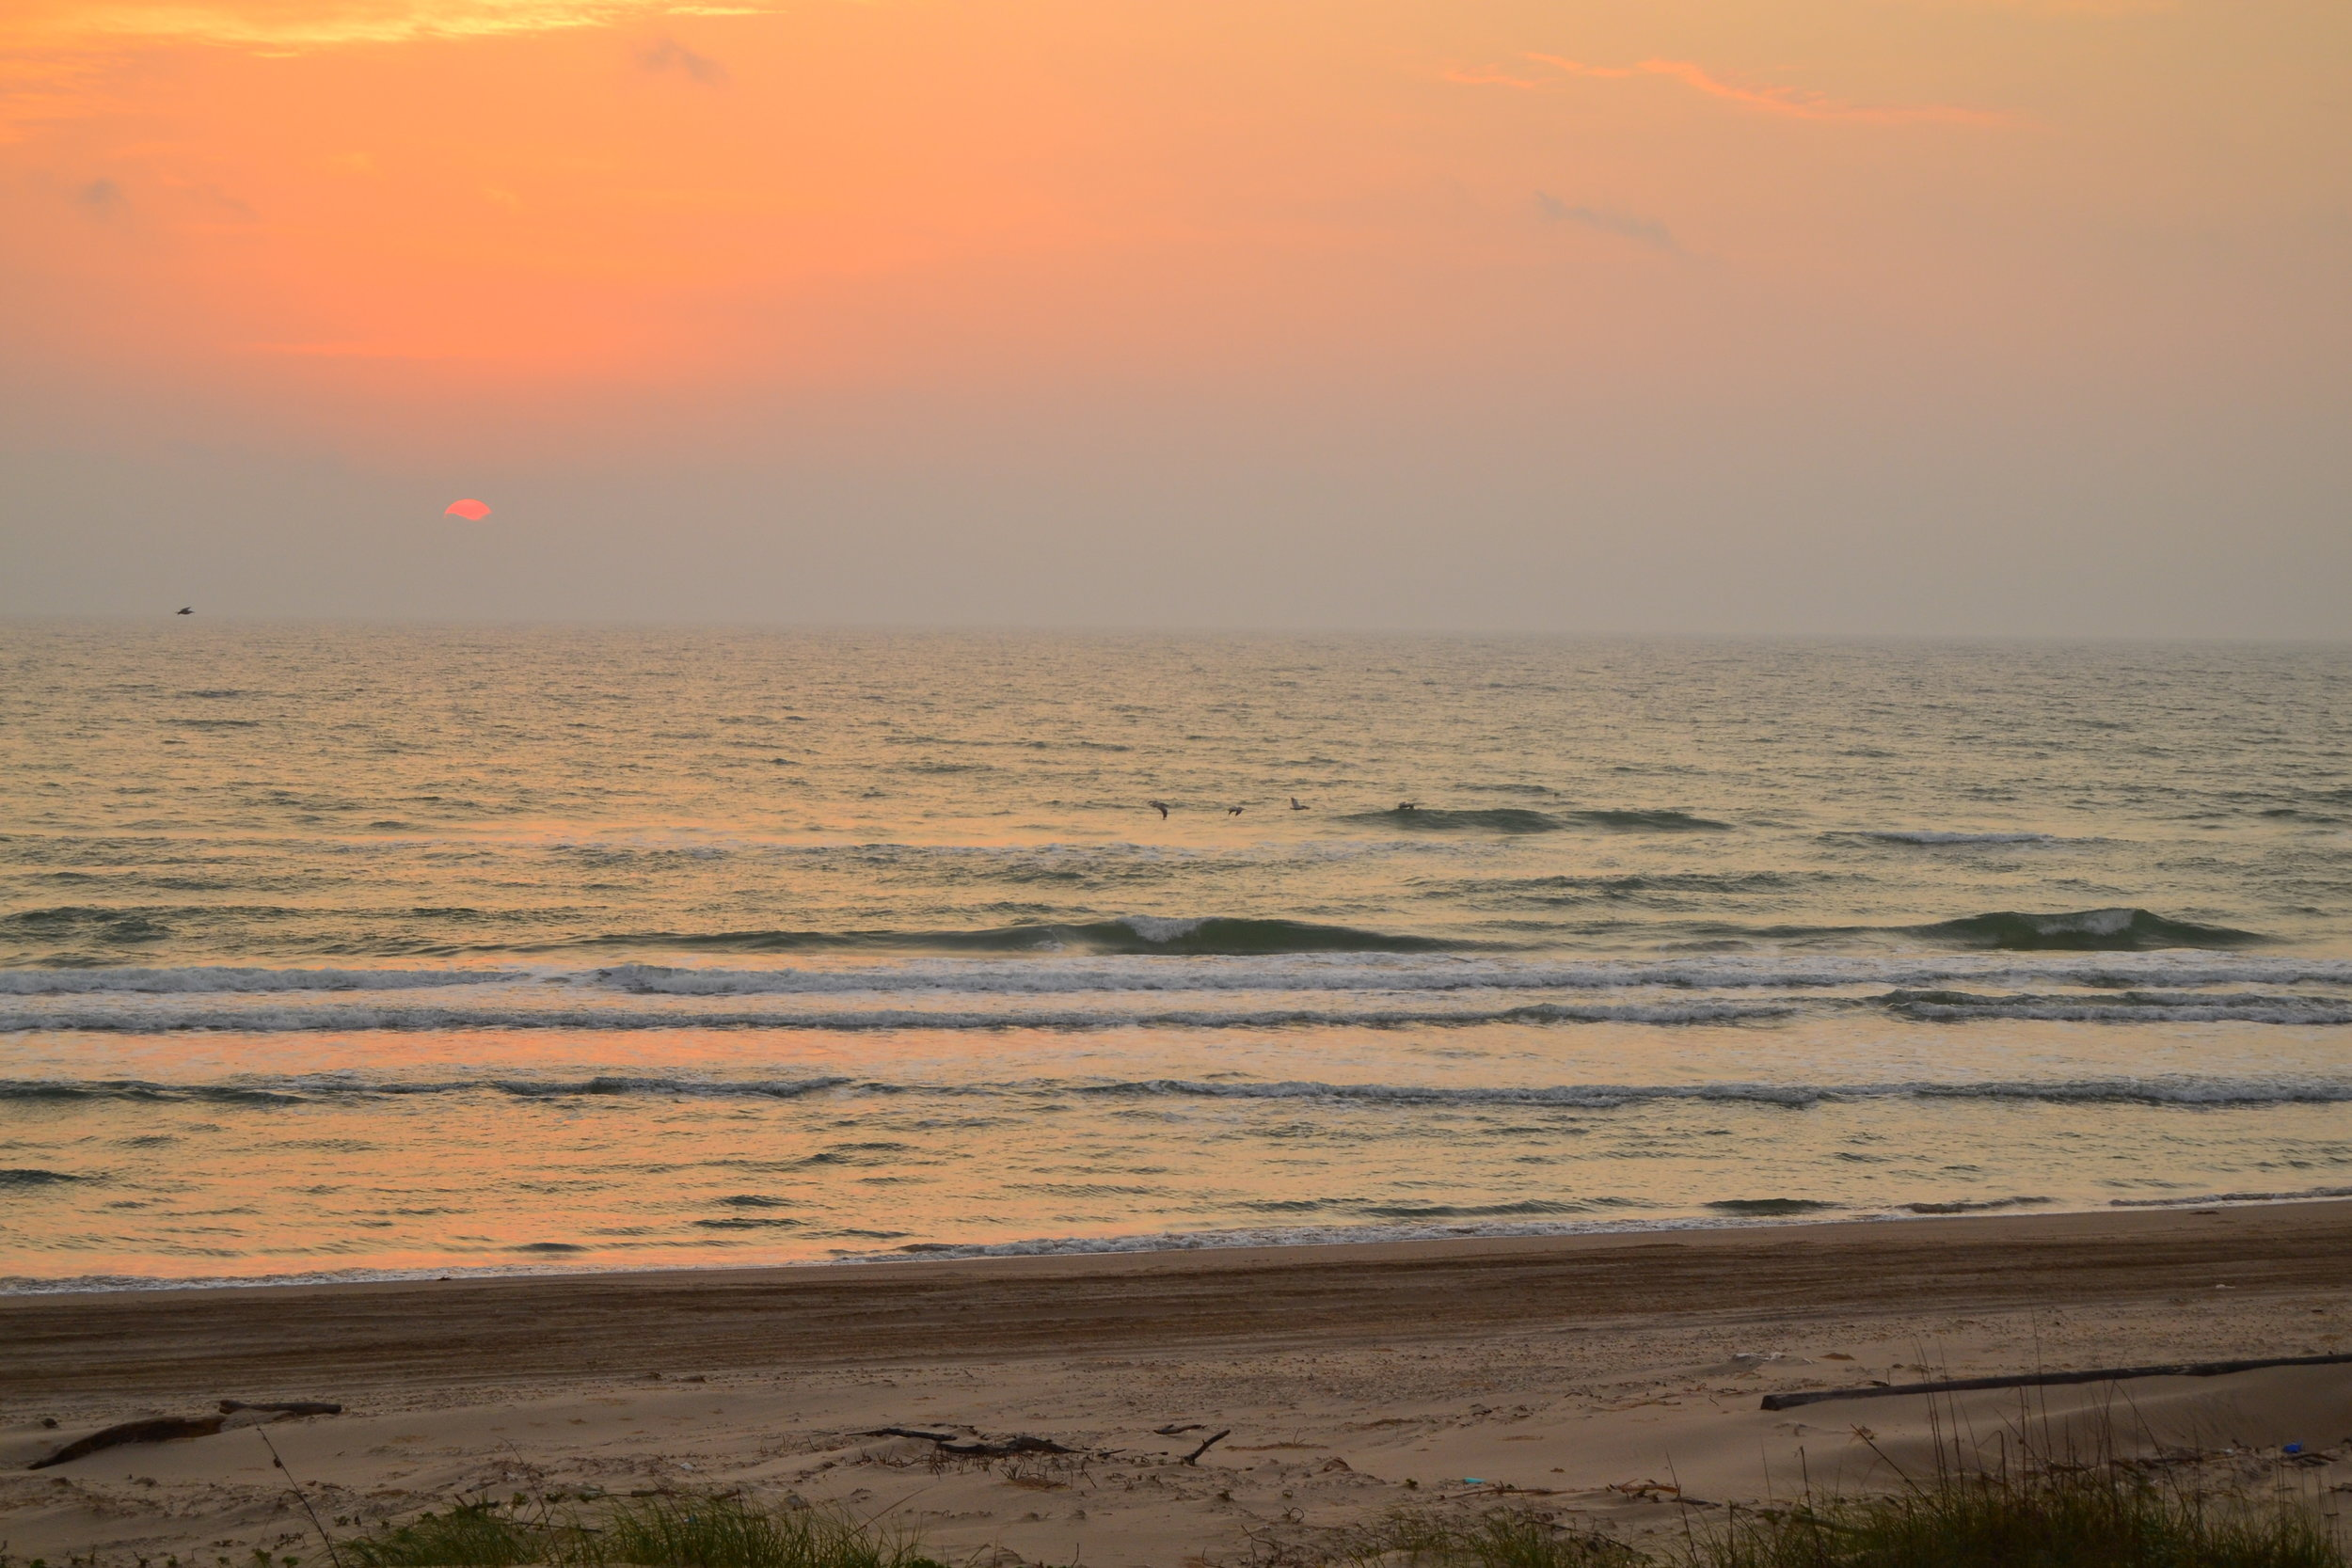 Sunrises are just part of the beauty of waking up on Padre.